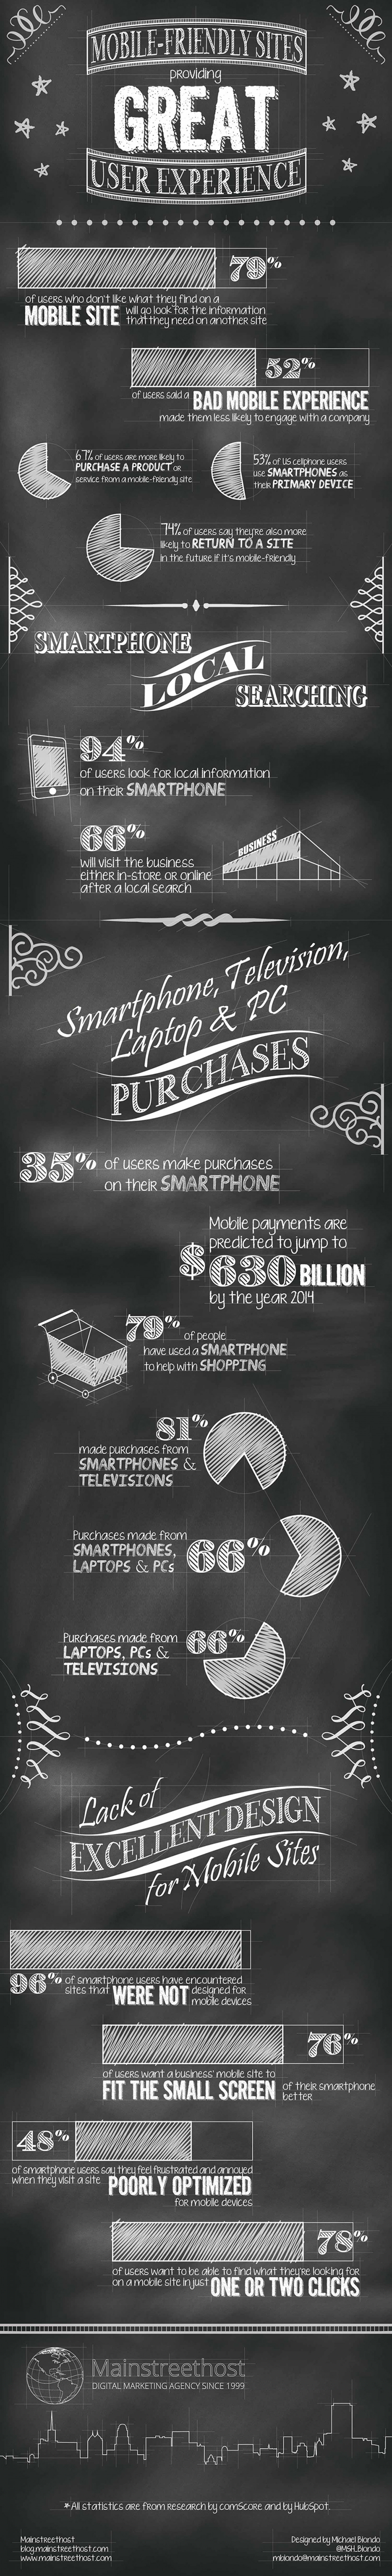 A Quick Lesson in Responsive Design Infographic